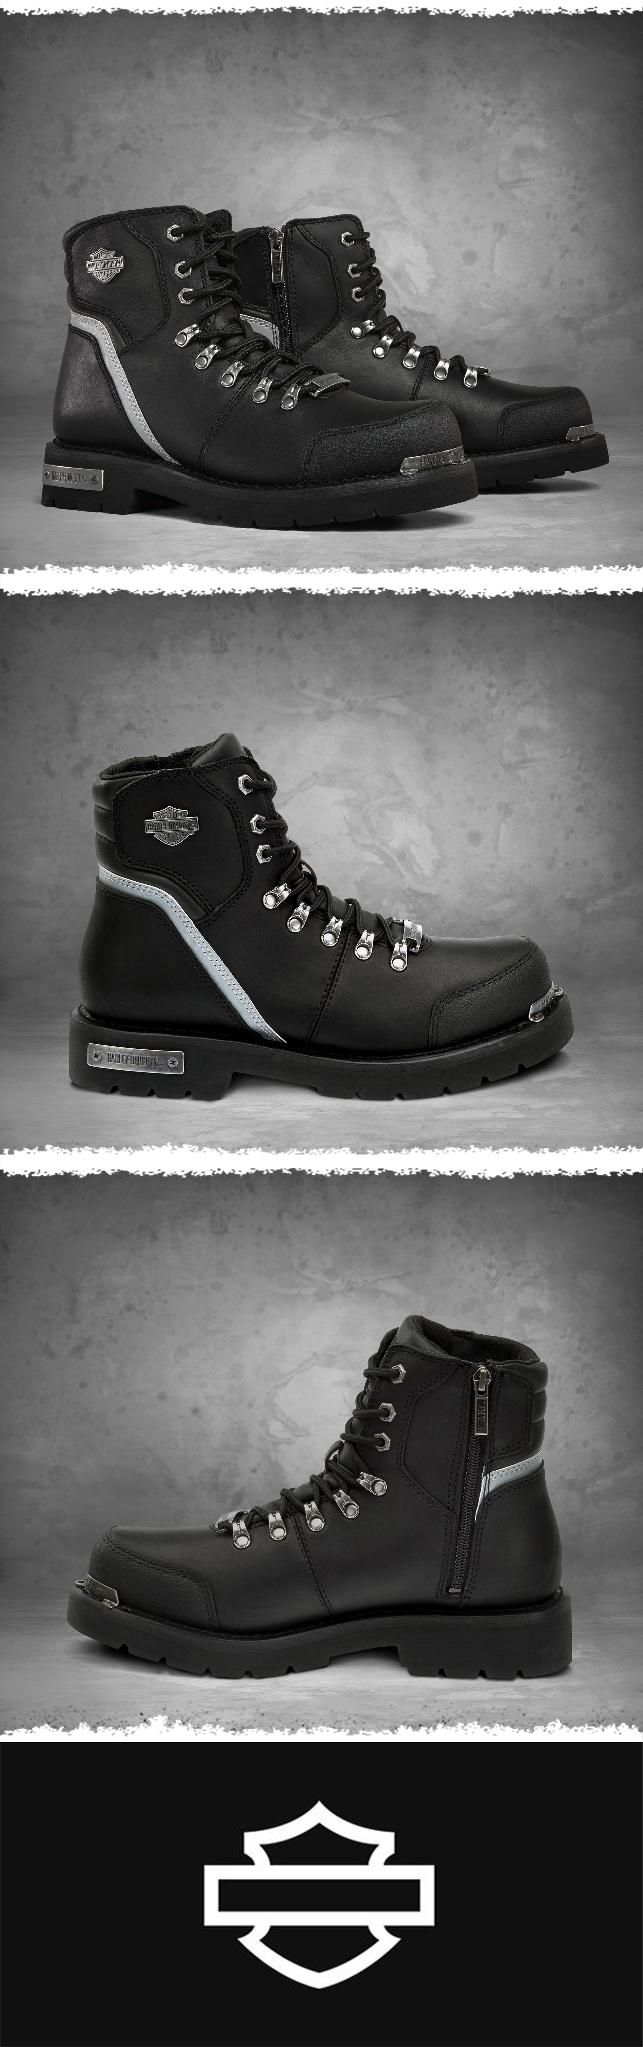 The perfect addition to your riding collection. | Harley-Davidson Men's Brawley High-Visibility Reflective Performance Boots